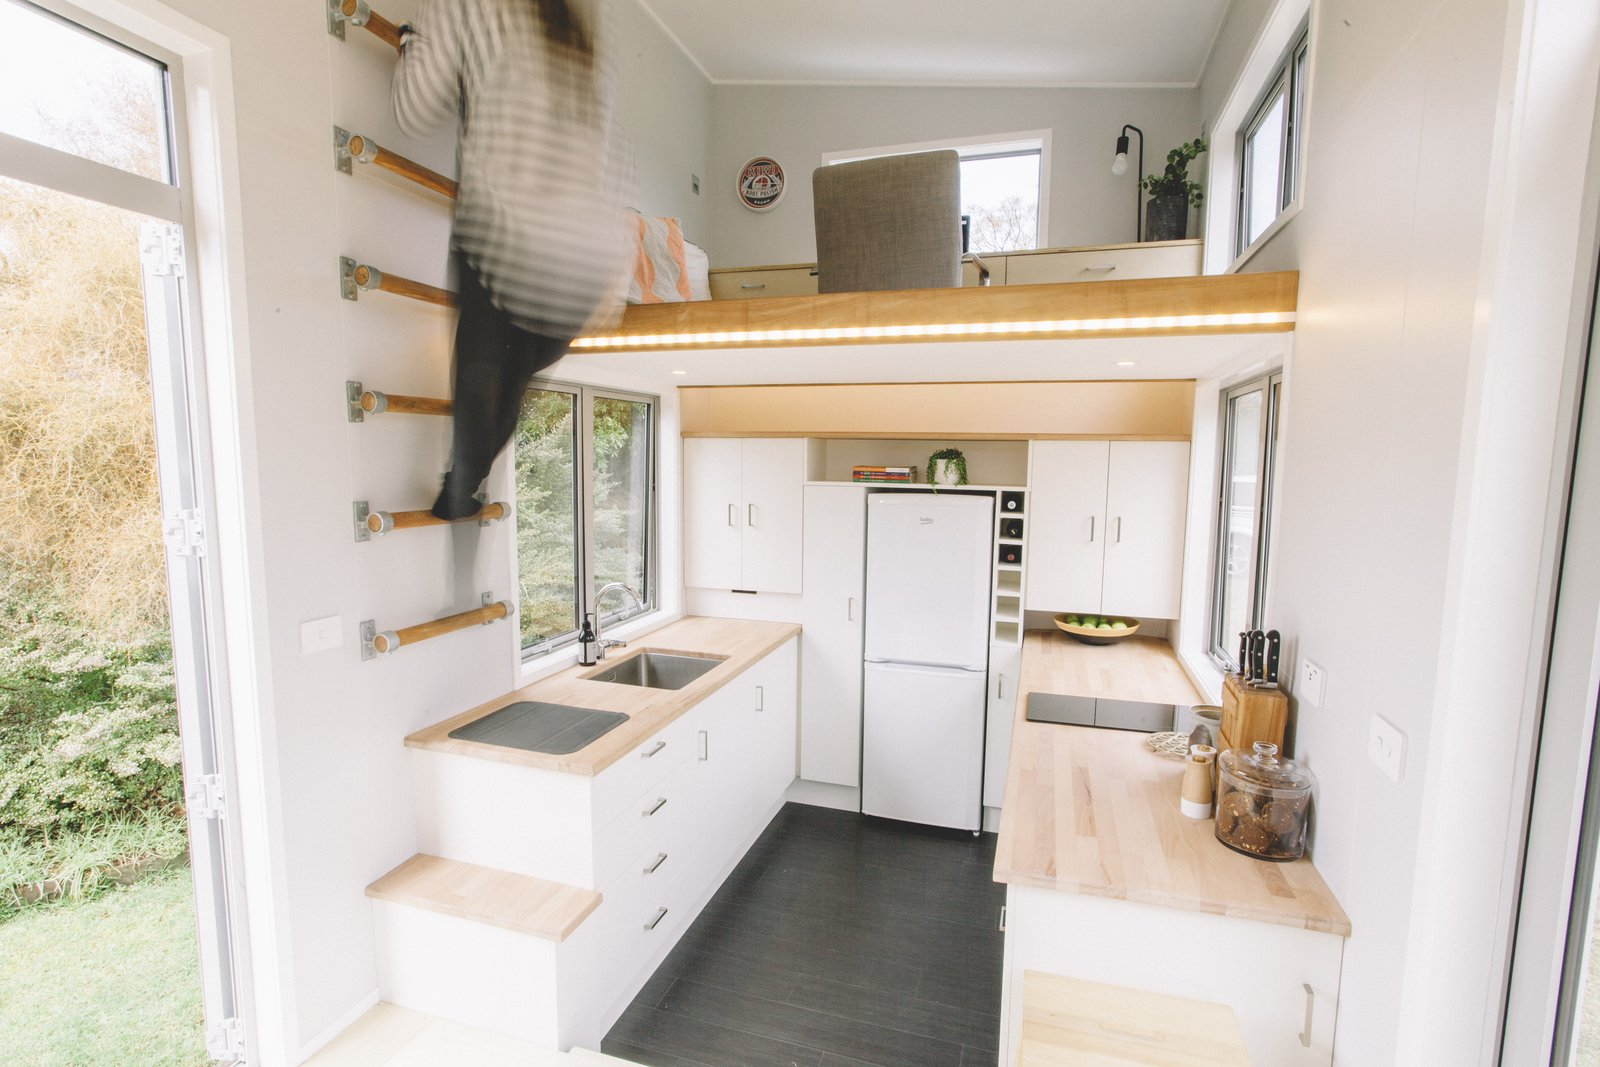 Millennial Tiny House ladder